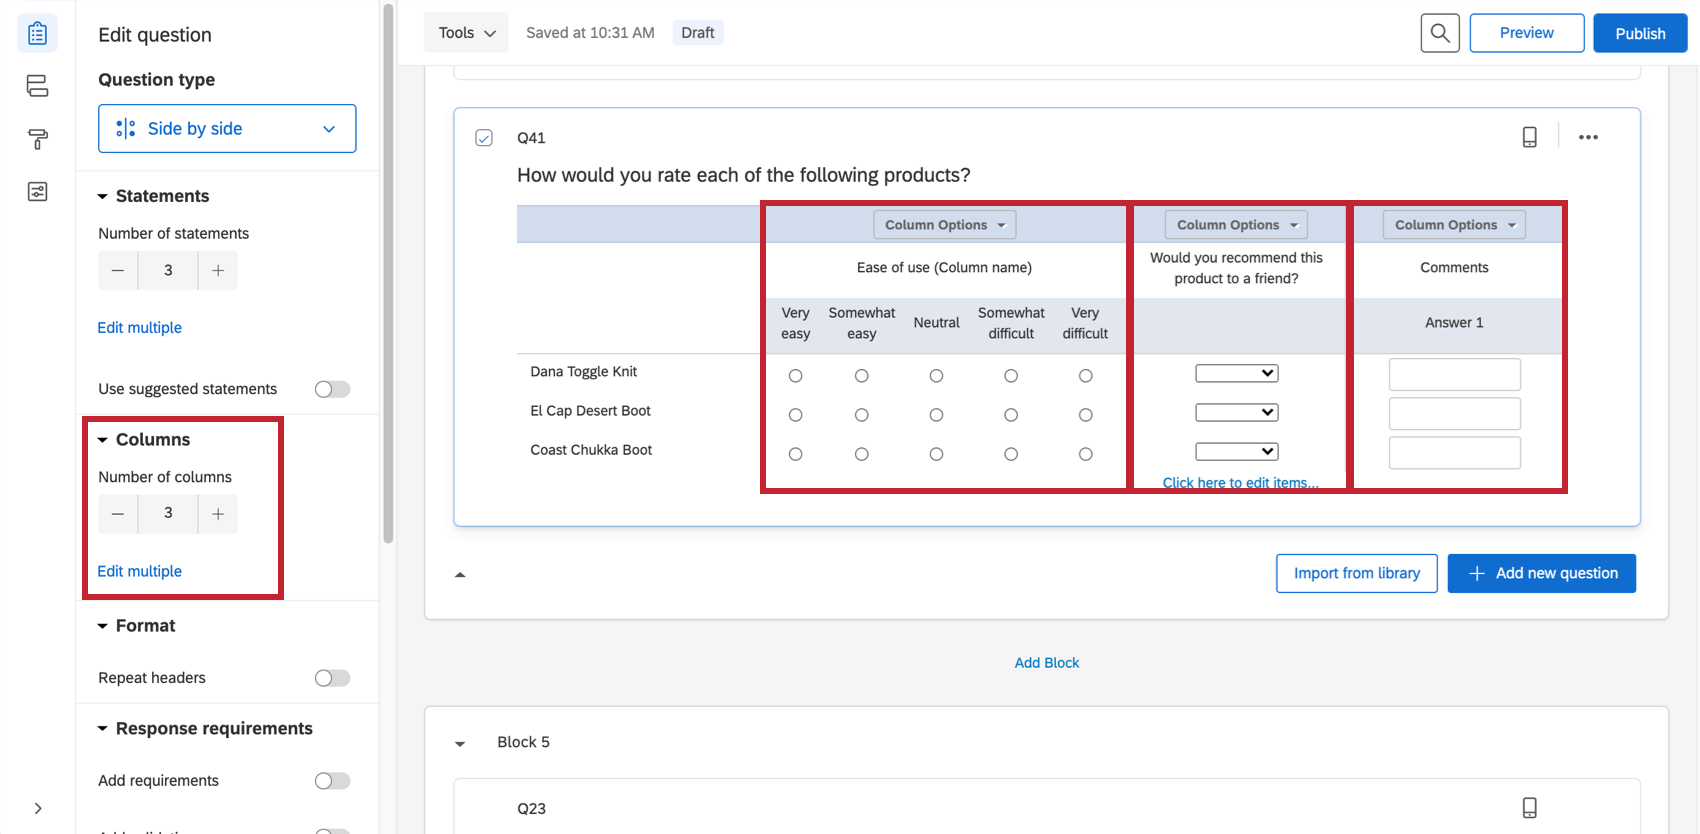 3 columns listed on the question editing pane and in the question there is a column for an ease of use scale, a column for a yes/no question, and a final third column for feedback